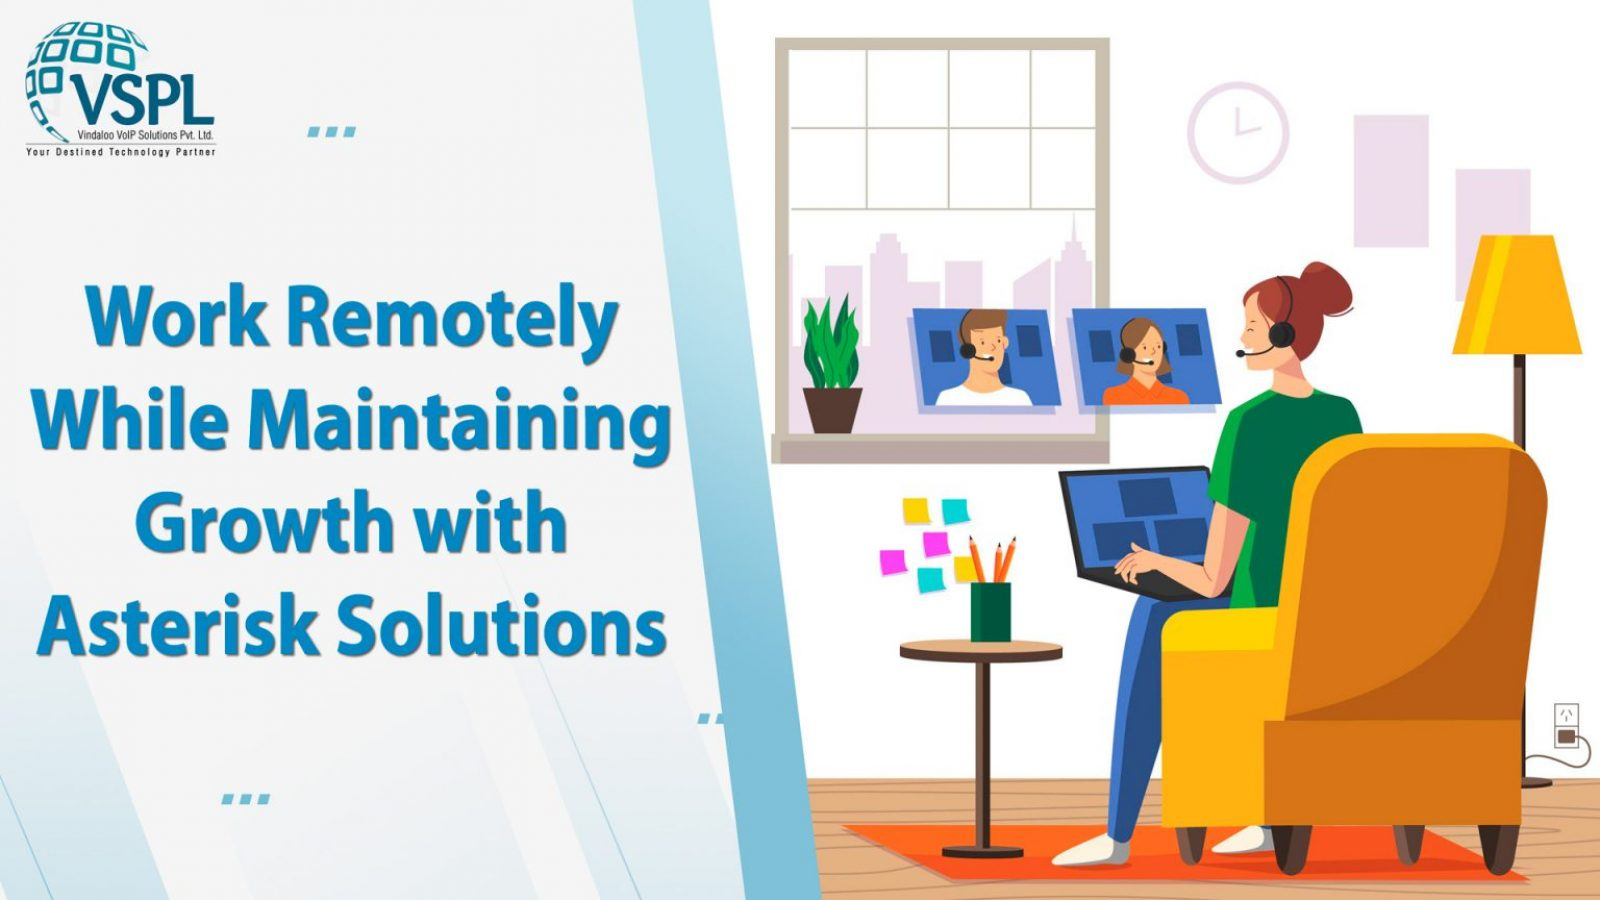 Work Remotely While Maintaining Growth with Asterisk Solutions